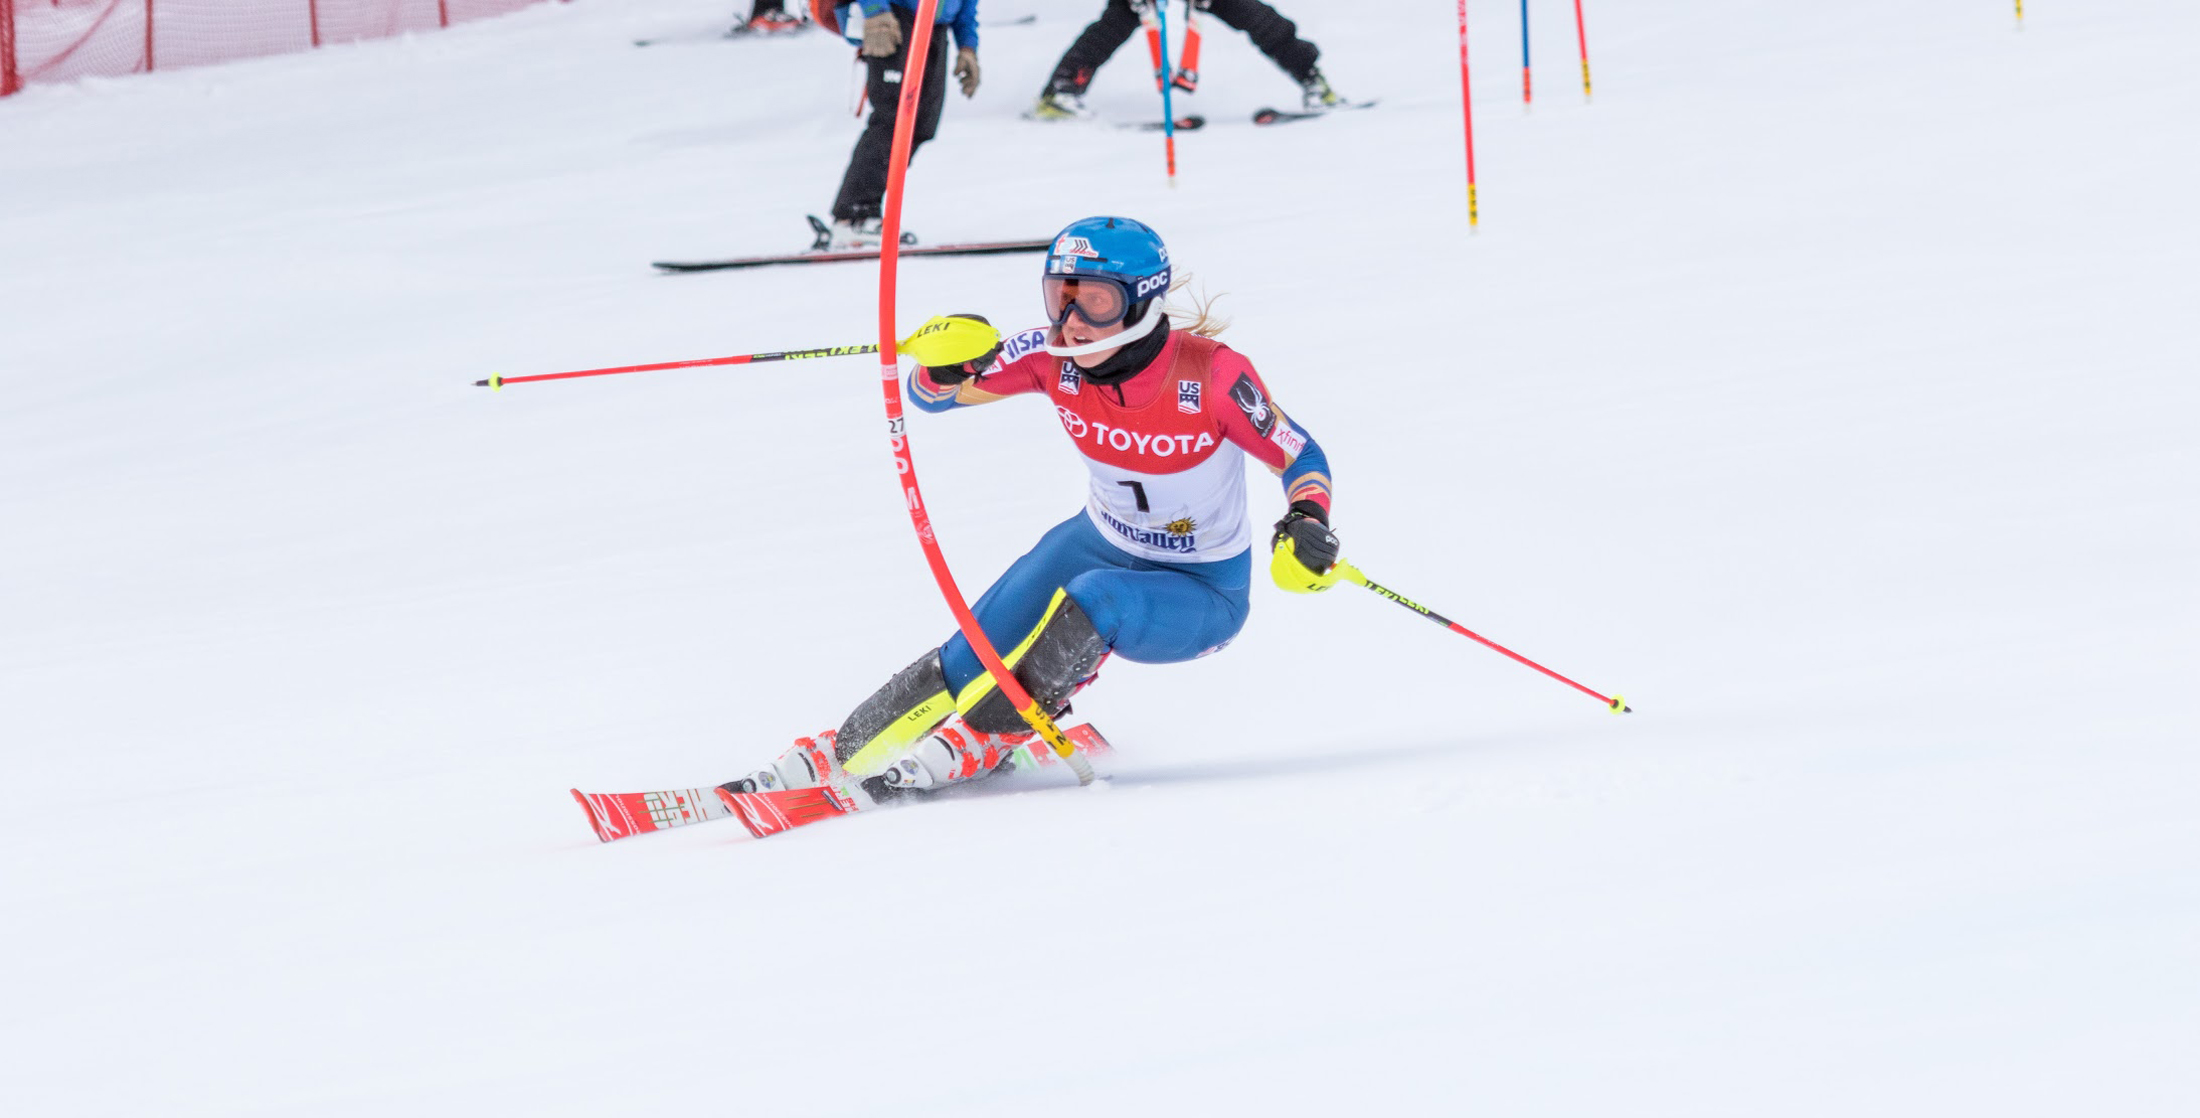 Nina O'Brien won her third U.S. National title in three separate disciplines with her slalom victory Saturday in Sun Valley, Idaho (Oliver @oliverguyphoto // Oliver Guy Photo)